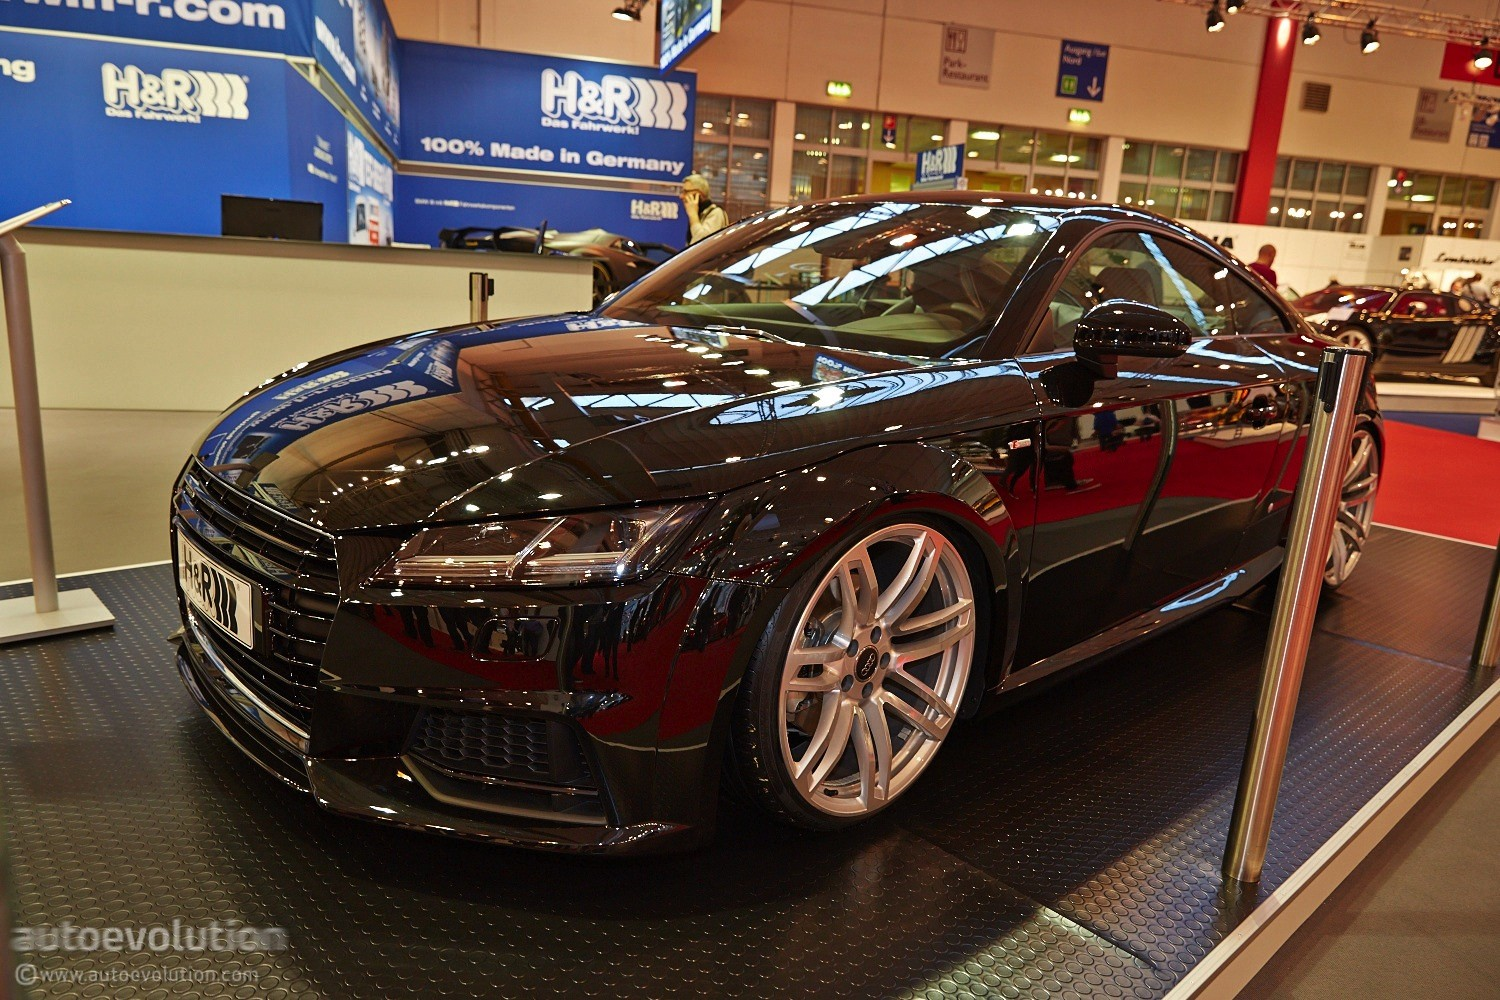 Geneva Auto Sales >> 2015 Audi TT Debuts With Performance Lowering Springs from H&R in Essen [Live Photos ...